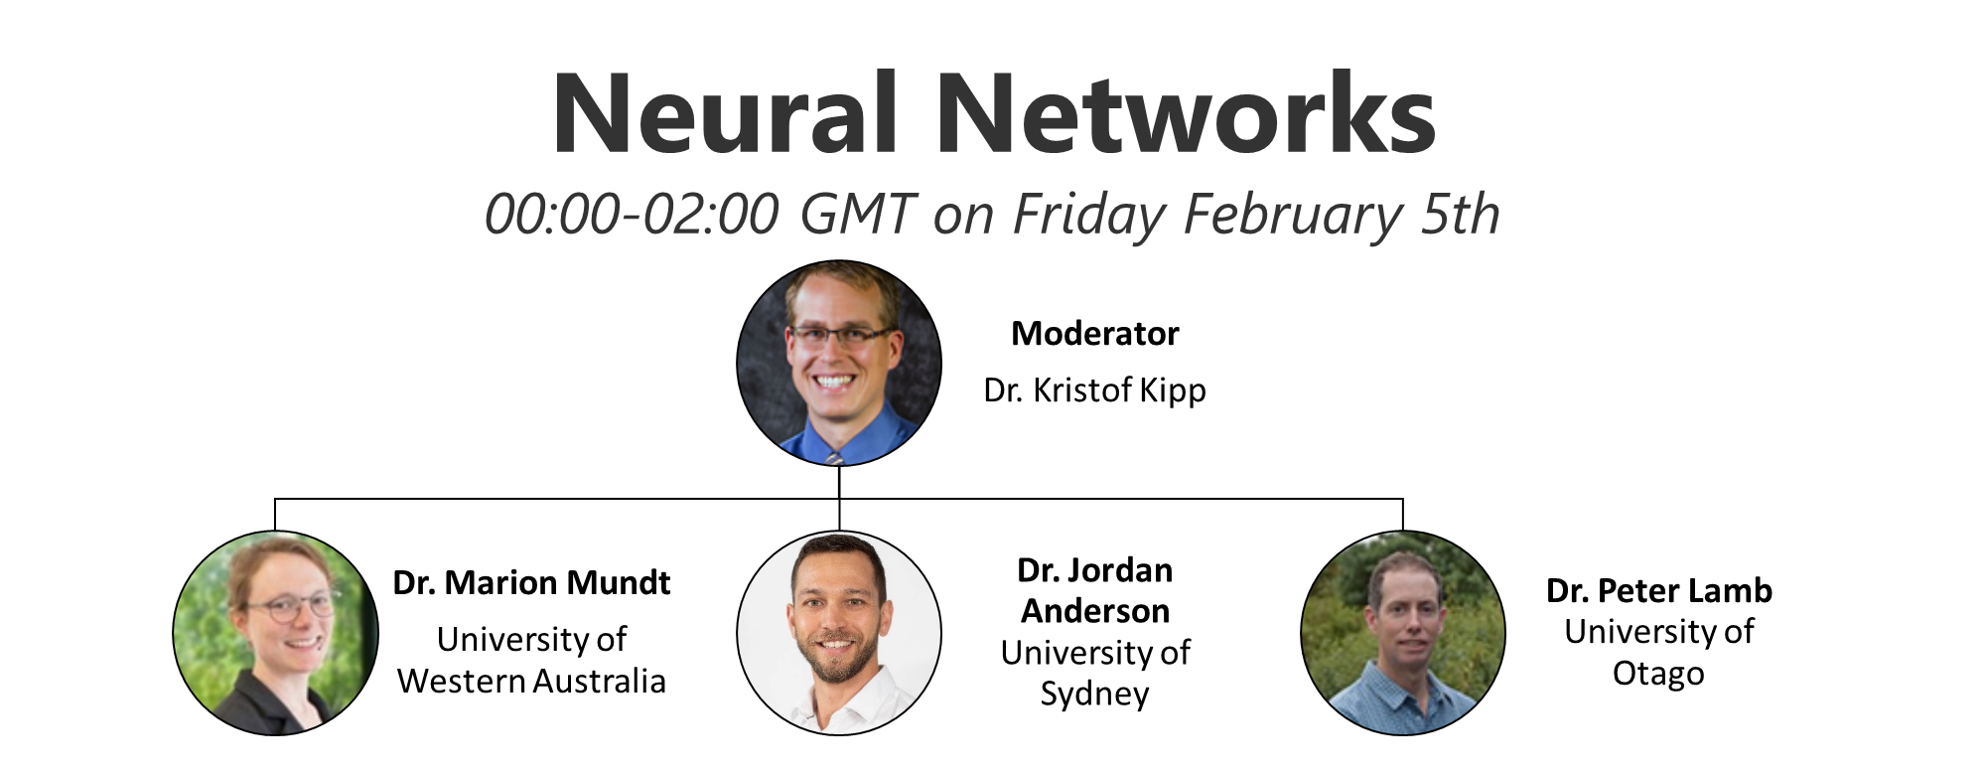 Neural Networks. 00:00-02:00 GMT on Thursday- Friday February 4-5th. Moderator: Dr. Kristof Kipp. Speakers: Dr. Marion Mundt University of Western Australia, Dr. Jordan Anderson University of Sydney, Dr. Peter Lamb University of Otago.